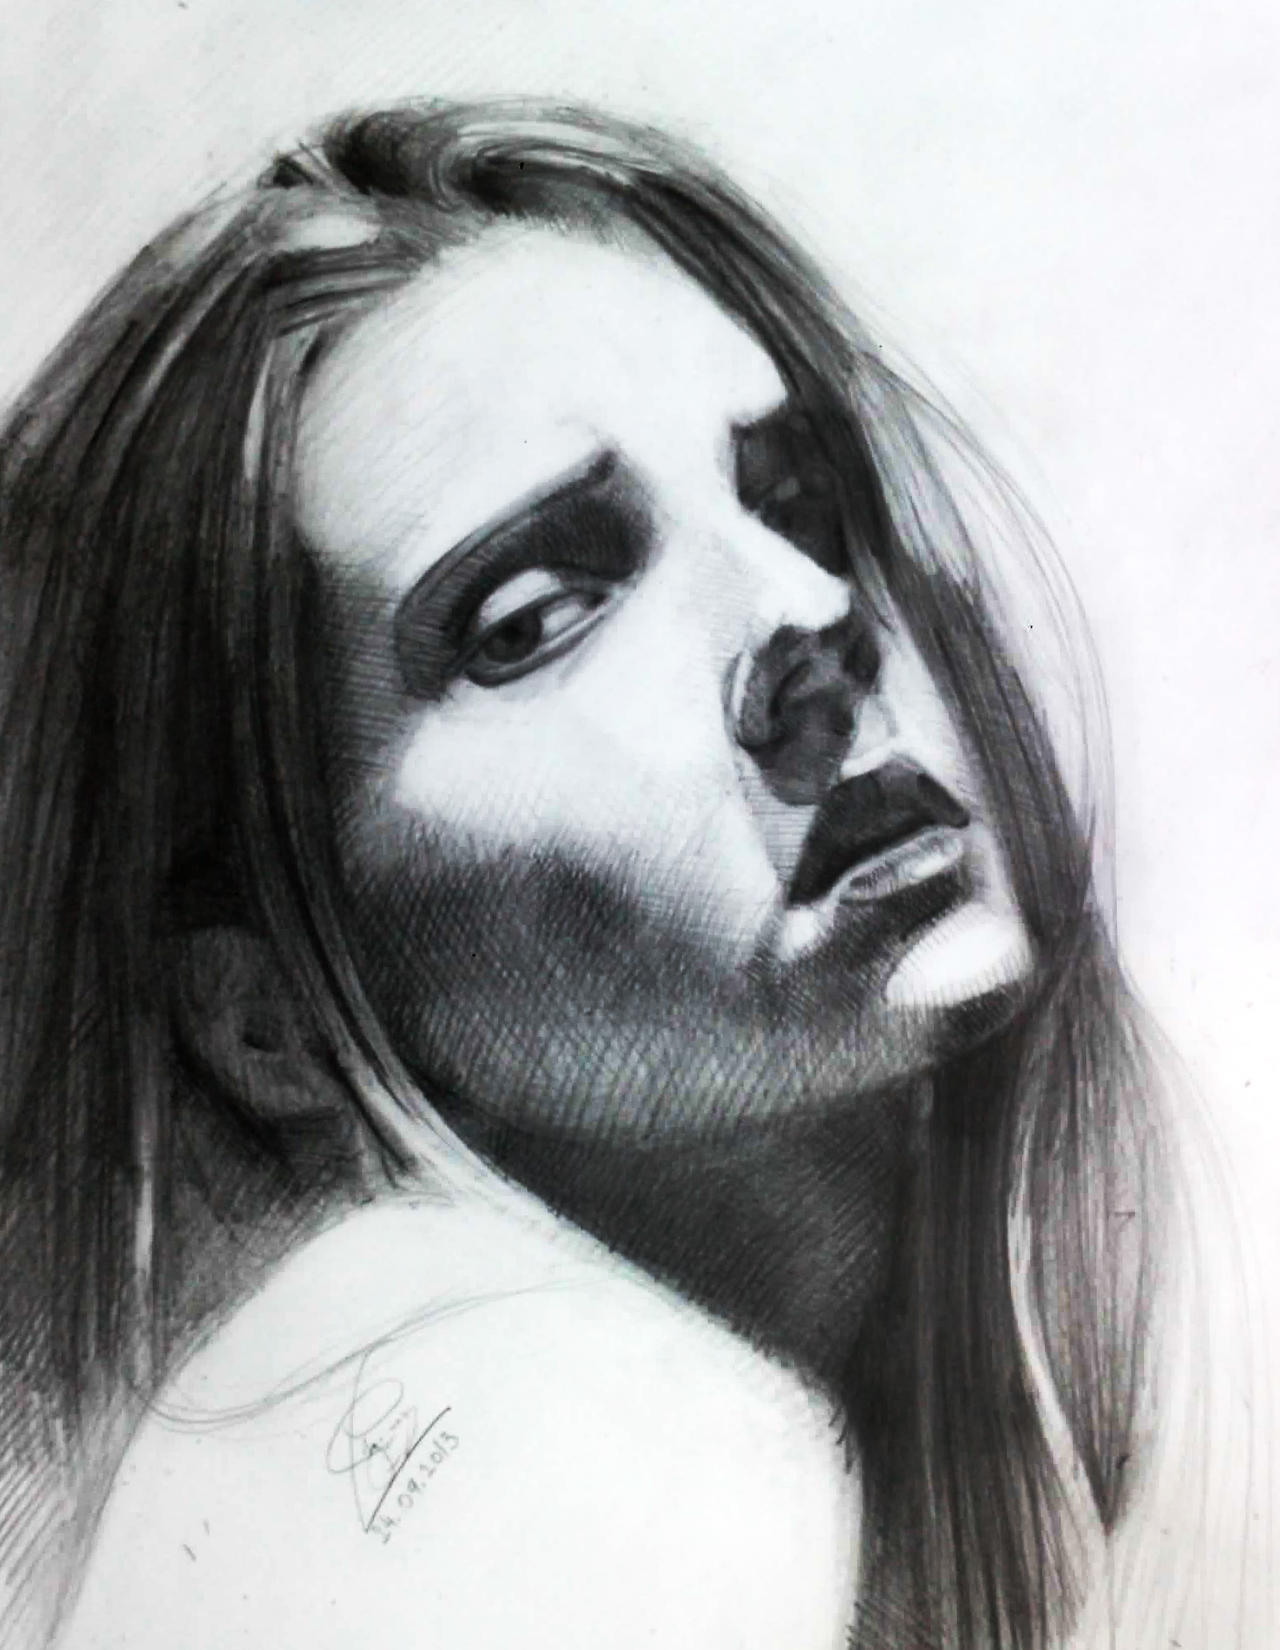 Girl of Charcoal (1) by Vangega